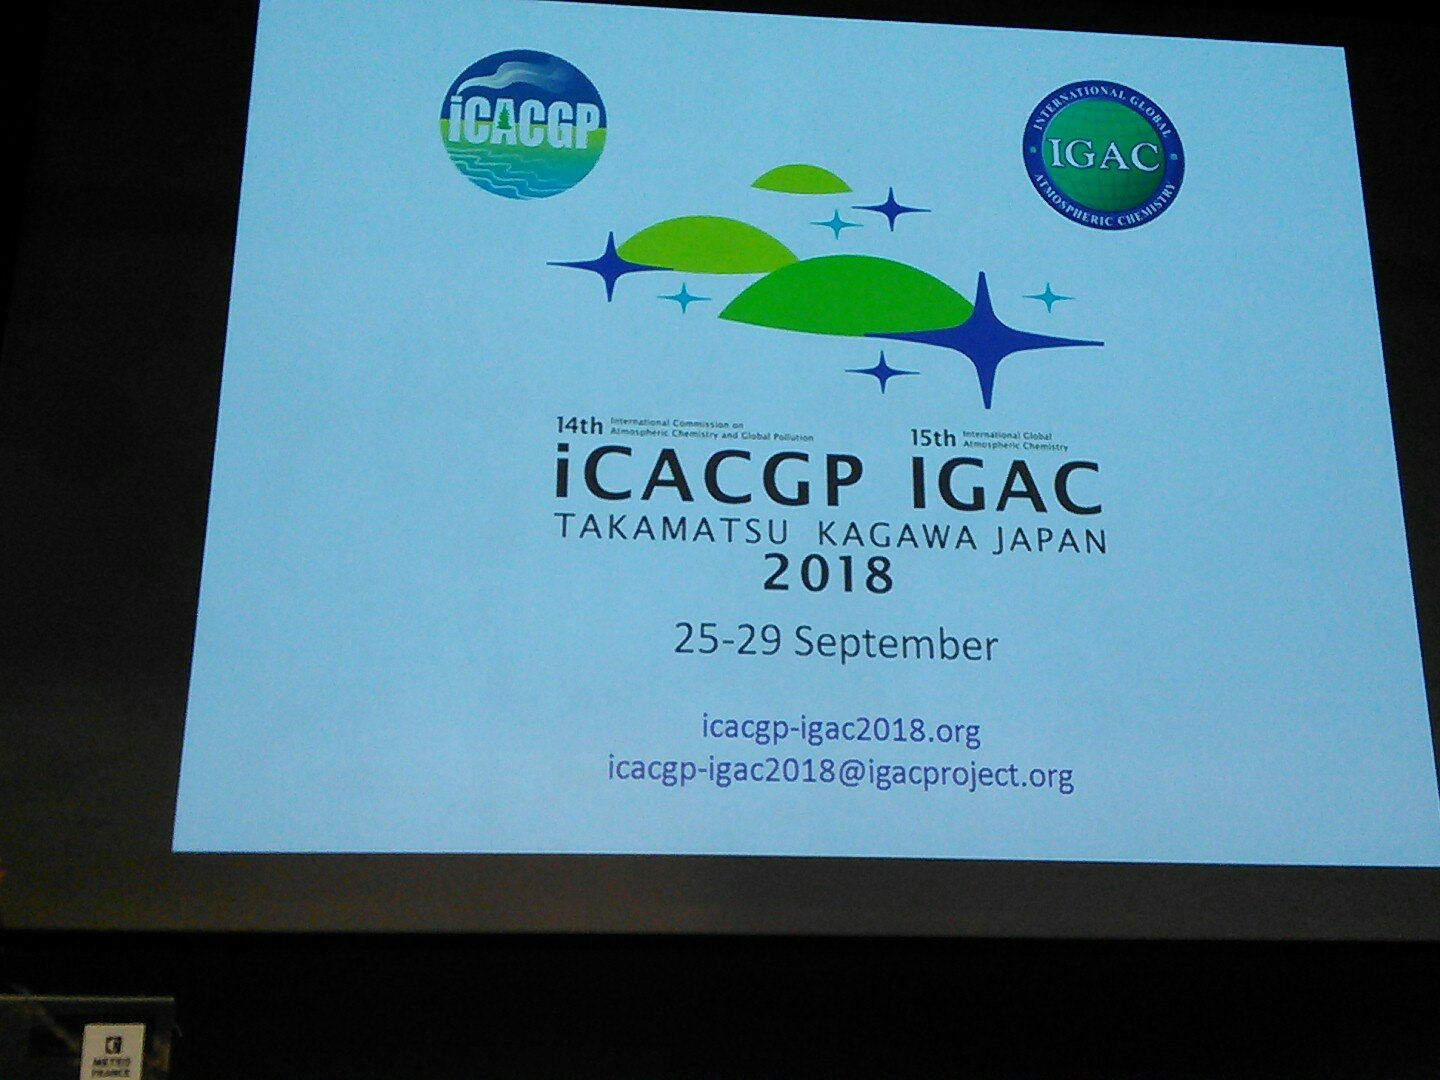 Colette Heald on the goals of IGAC and advertising the next meeting which will be right before the next SPARC general assembly #ccmi2017 https://t.co/tuzOKalGPg